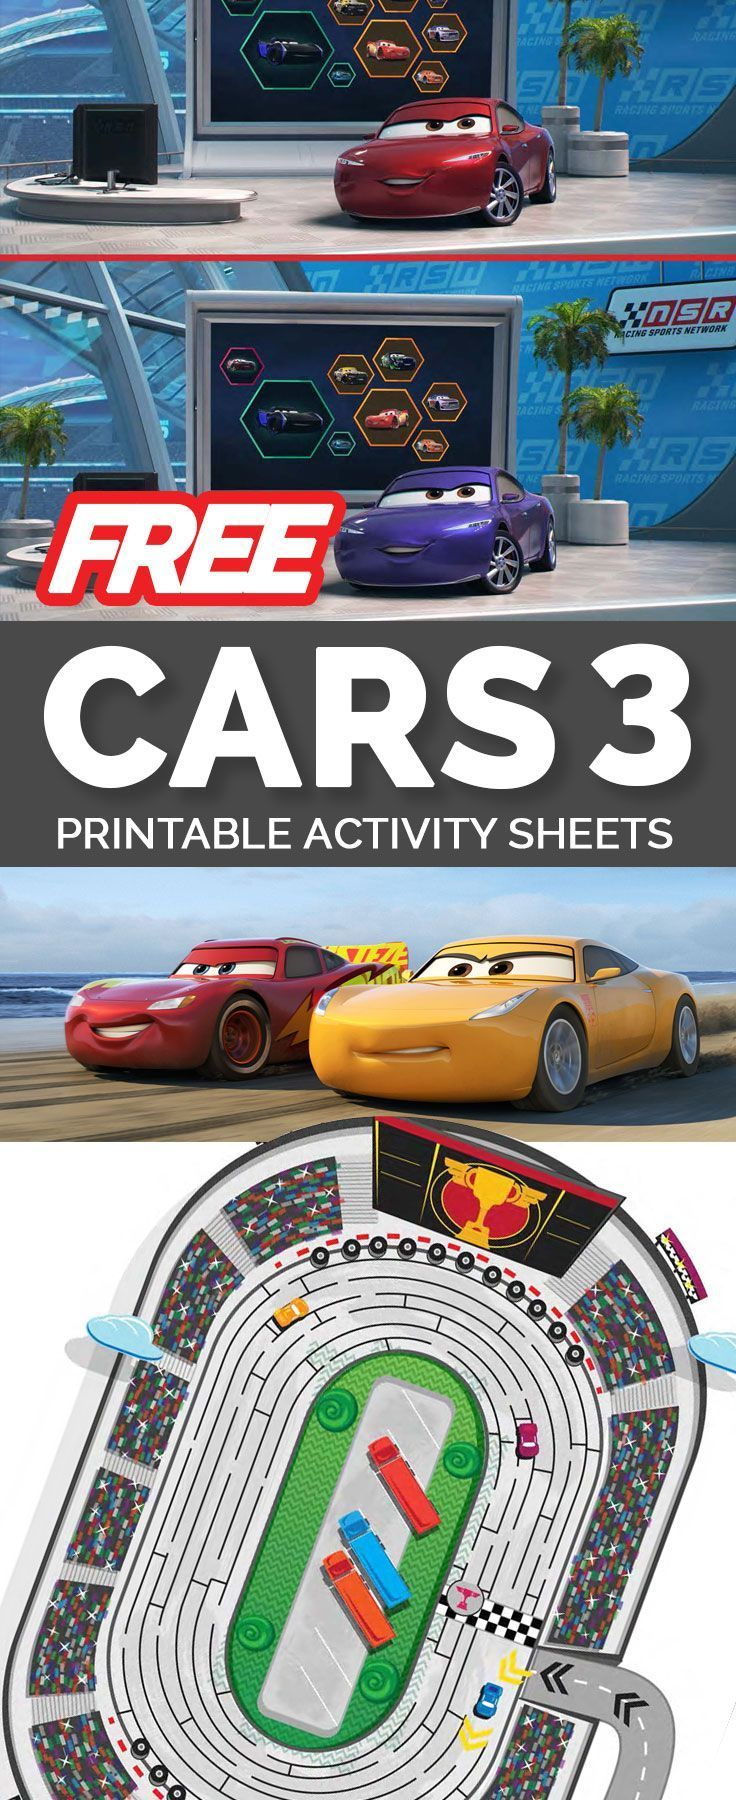 Cars 3 Printable activity sheets Free to download and print Fun